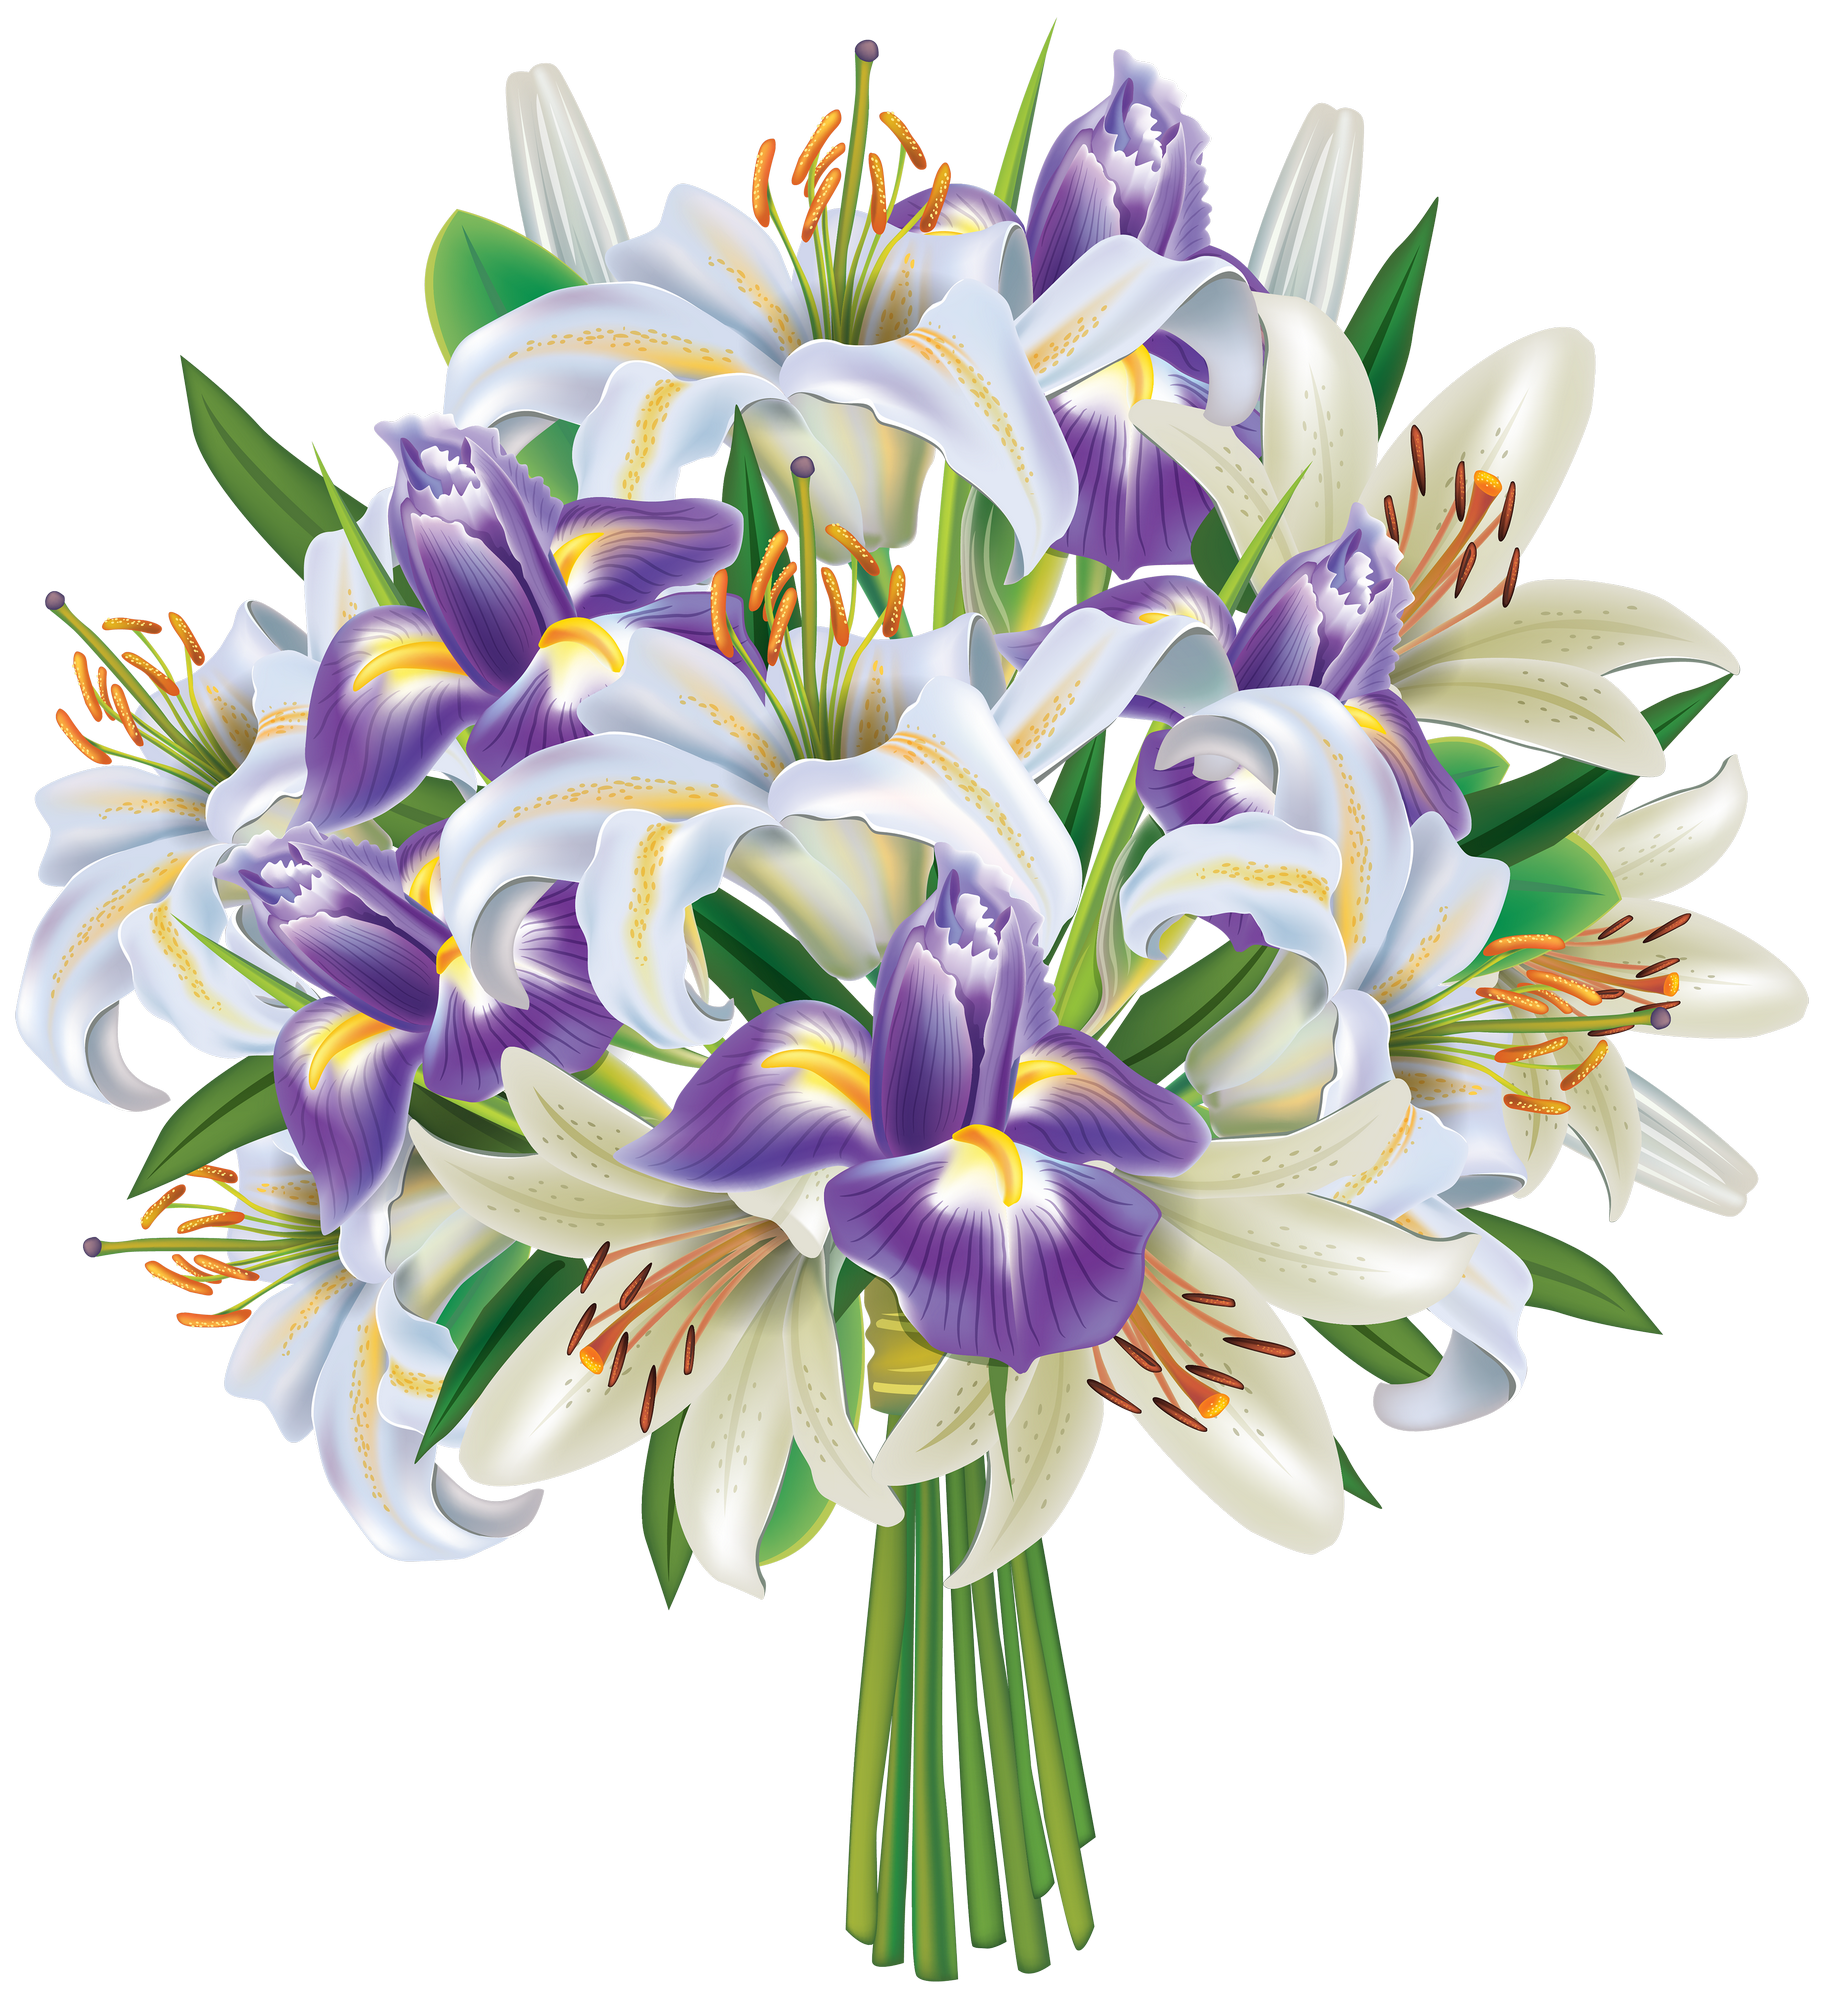 Bouquet png. Of flowers image purepng